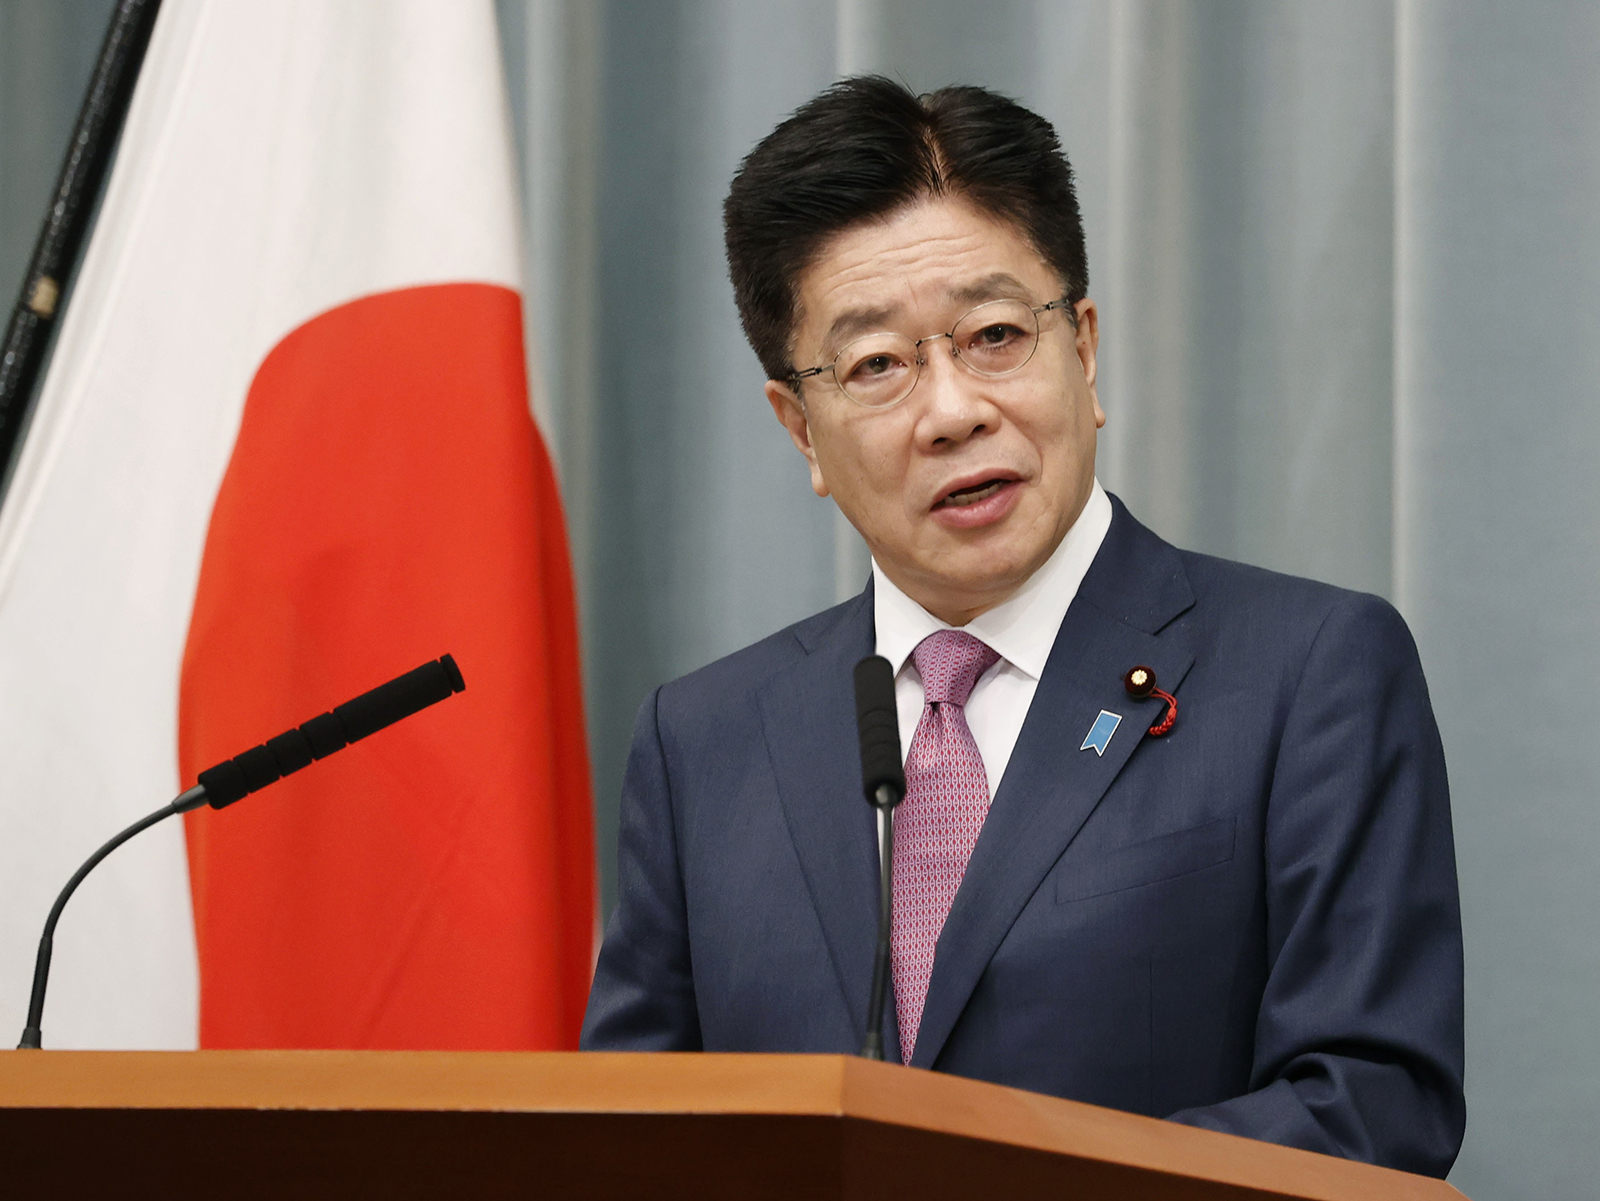 Japanese Chief Cabinet Secretary Katsunobu Kato attends a news conference in Tokyo, on Dec. 8.